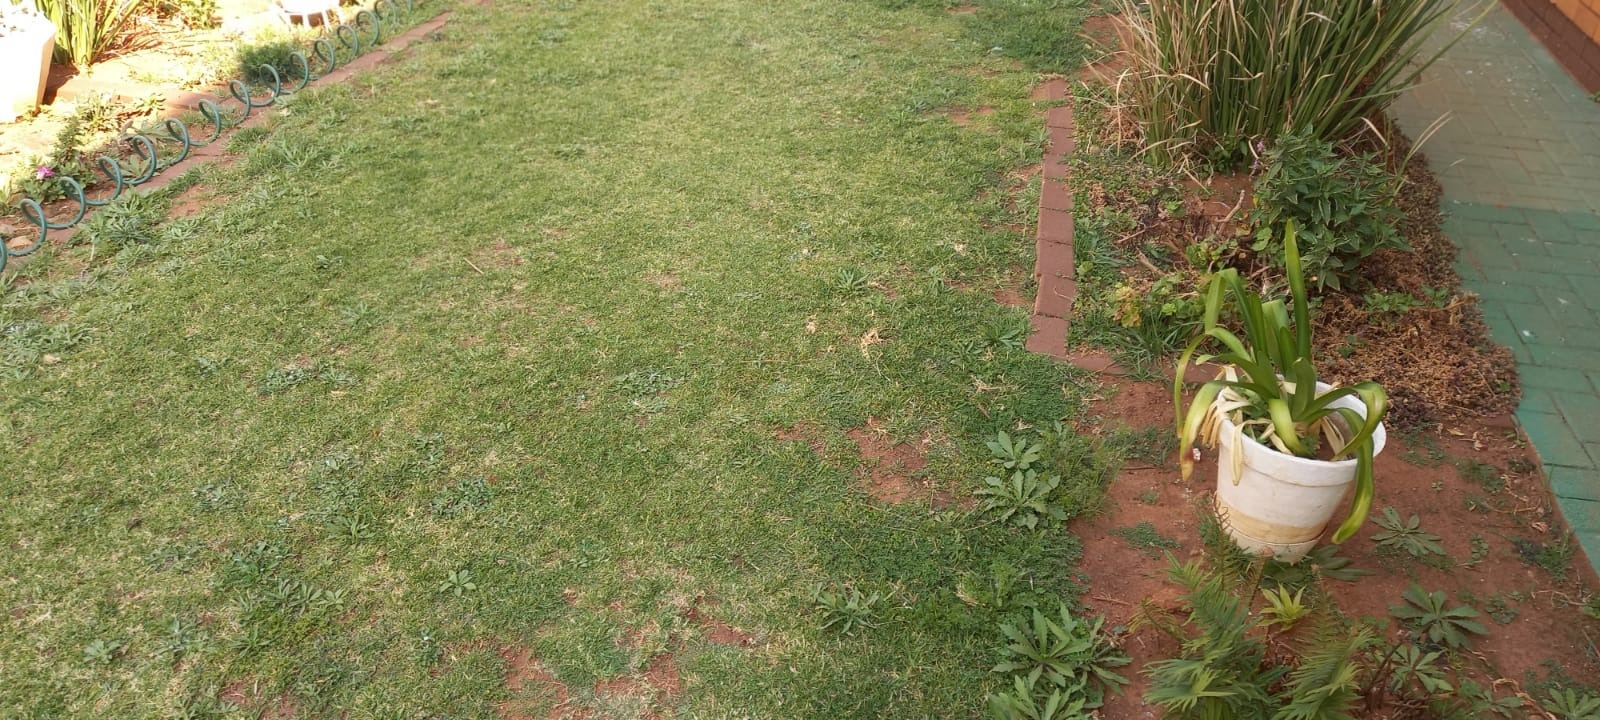 2 Bedroom Apartment / Flat For Sale in Stilfontein